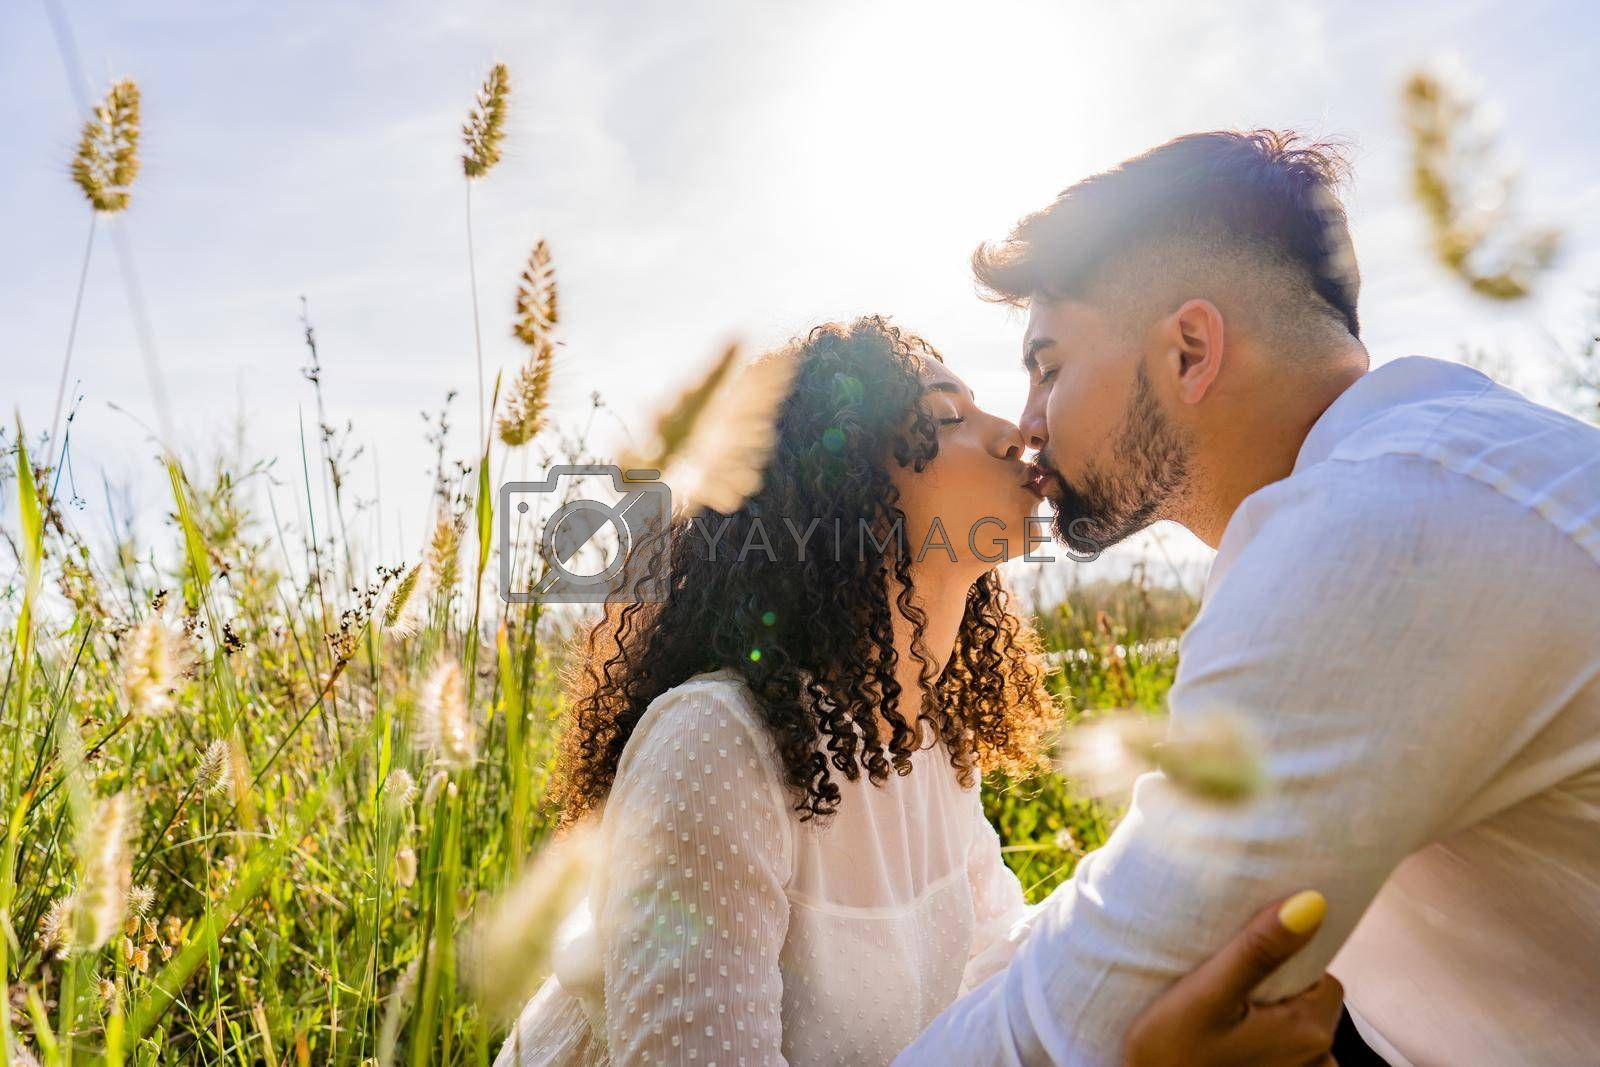 Royalty free image of Romance scene of mixed-race couple in love kissing in backlight effect among flowers and high grass with flare and reflection sun effect at sunset or sunrise. Bearded macho young man flirting by robbyfontanesi